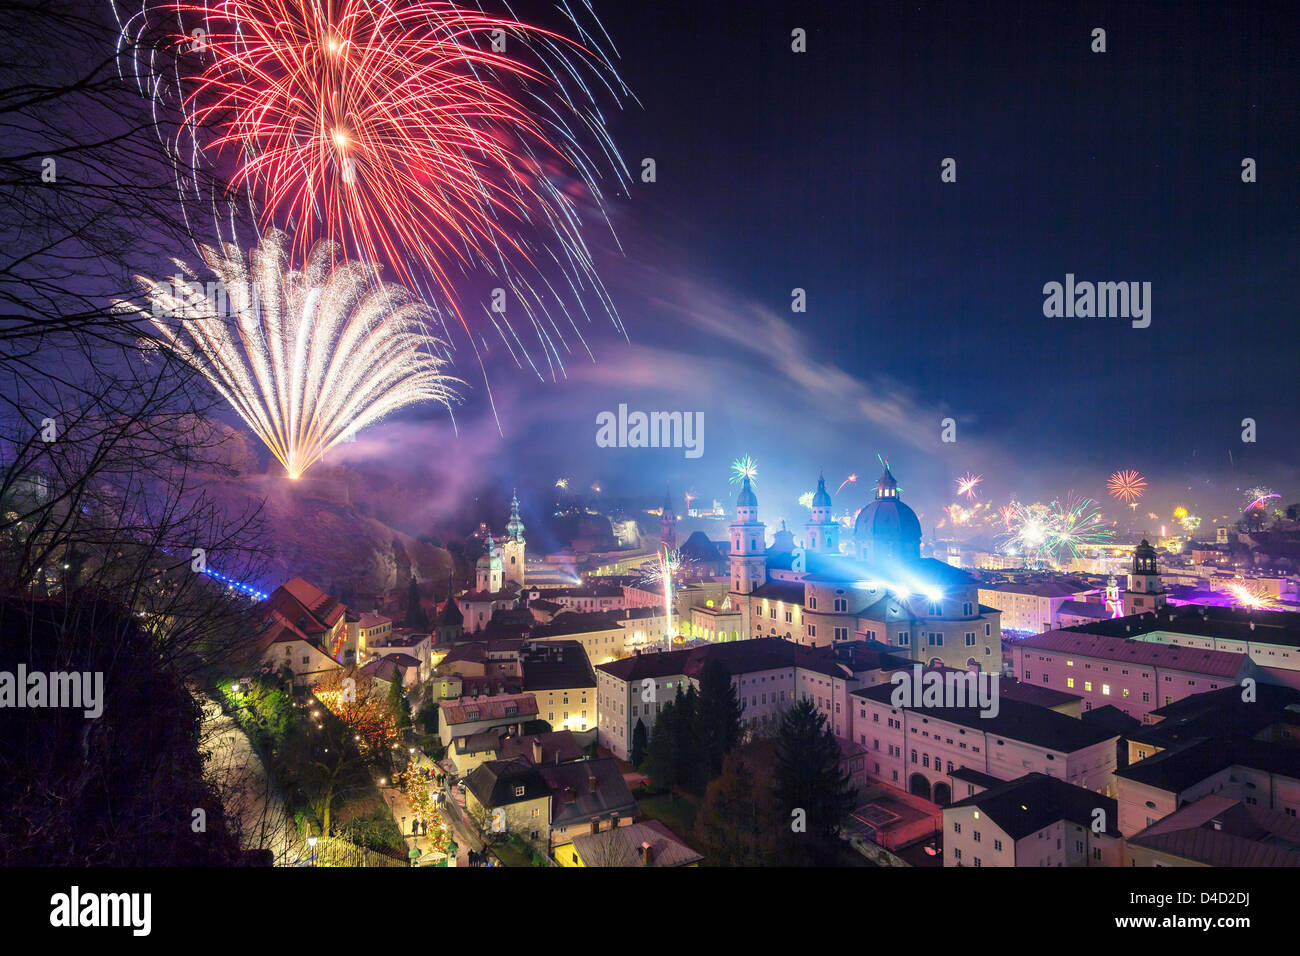 New Year's Eve fireworks above the old town of Salzburg, Austria - Stock Image